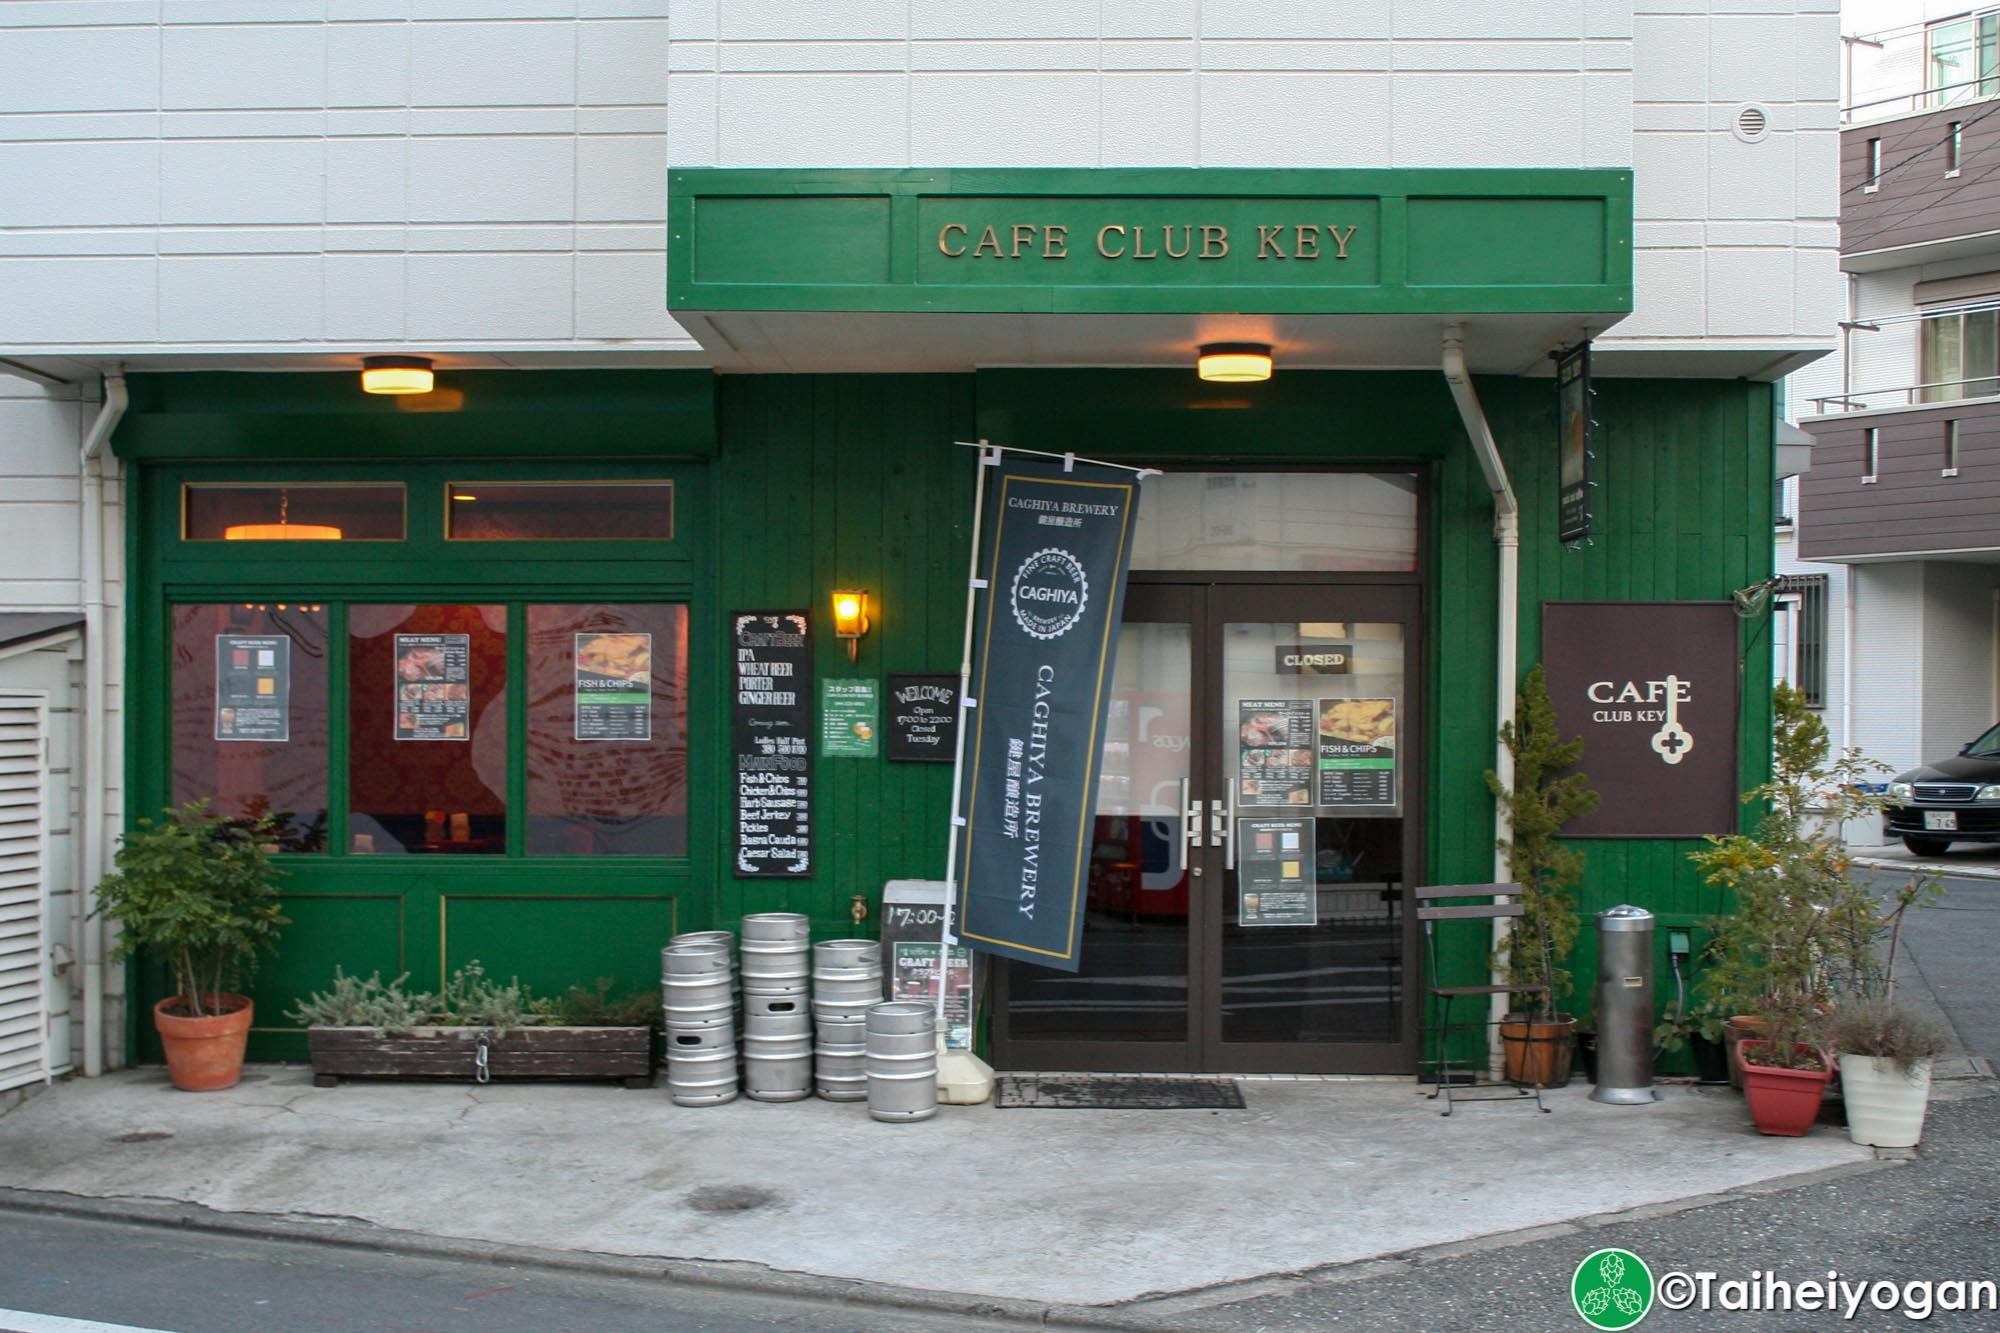 Cafe Club Key (Shin Kawasaki) - Entrance